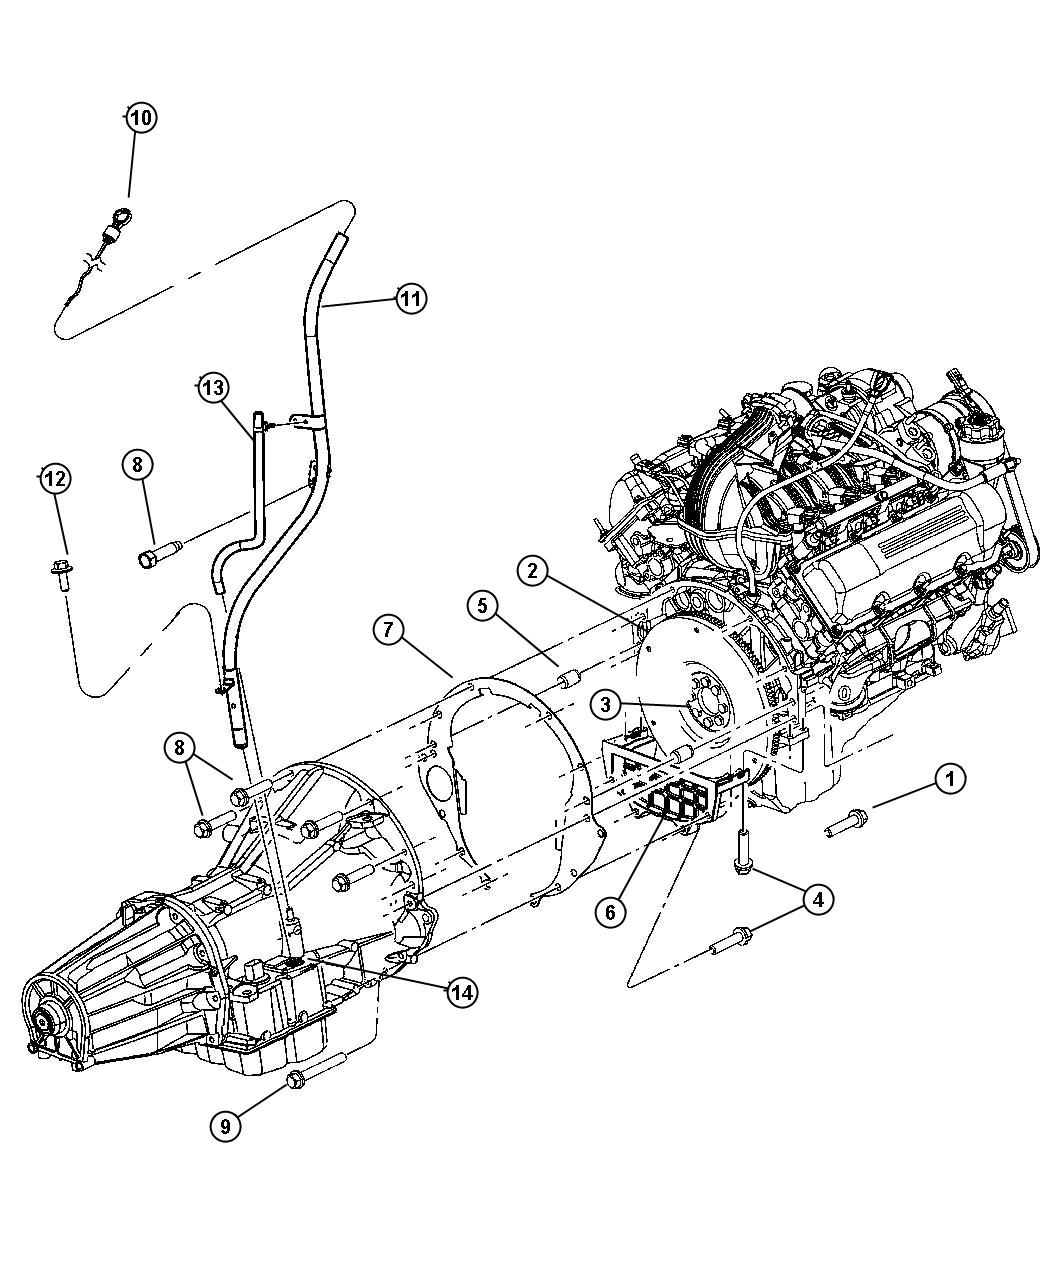 Dodge Dakota Transmission Diagram Free Engine